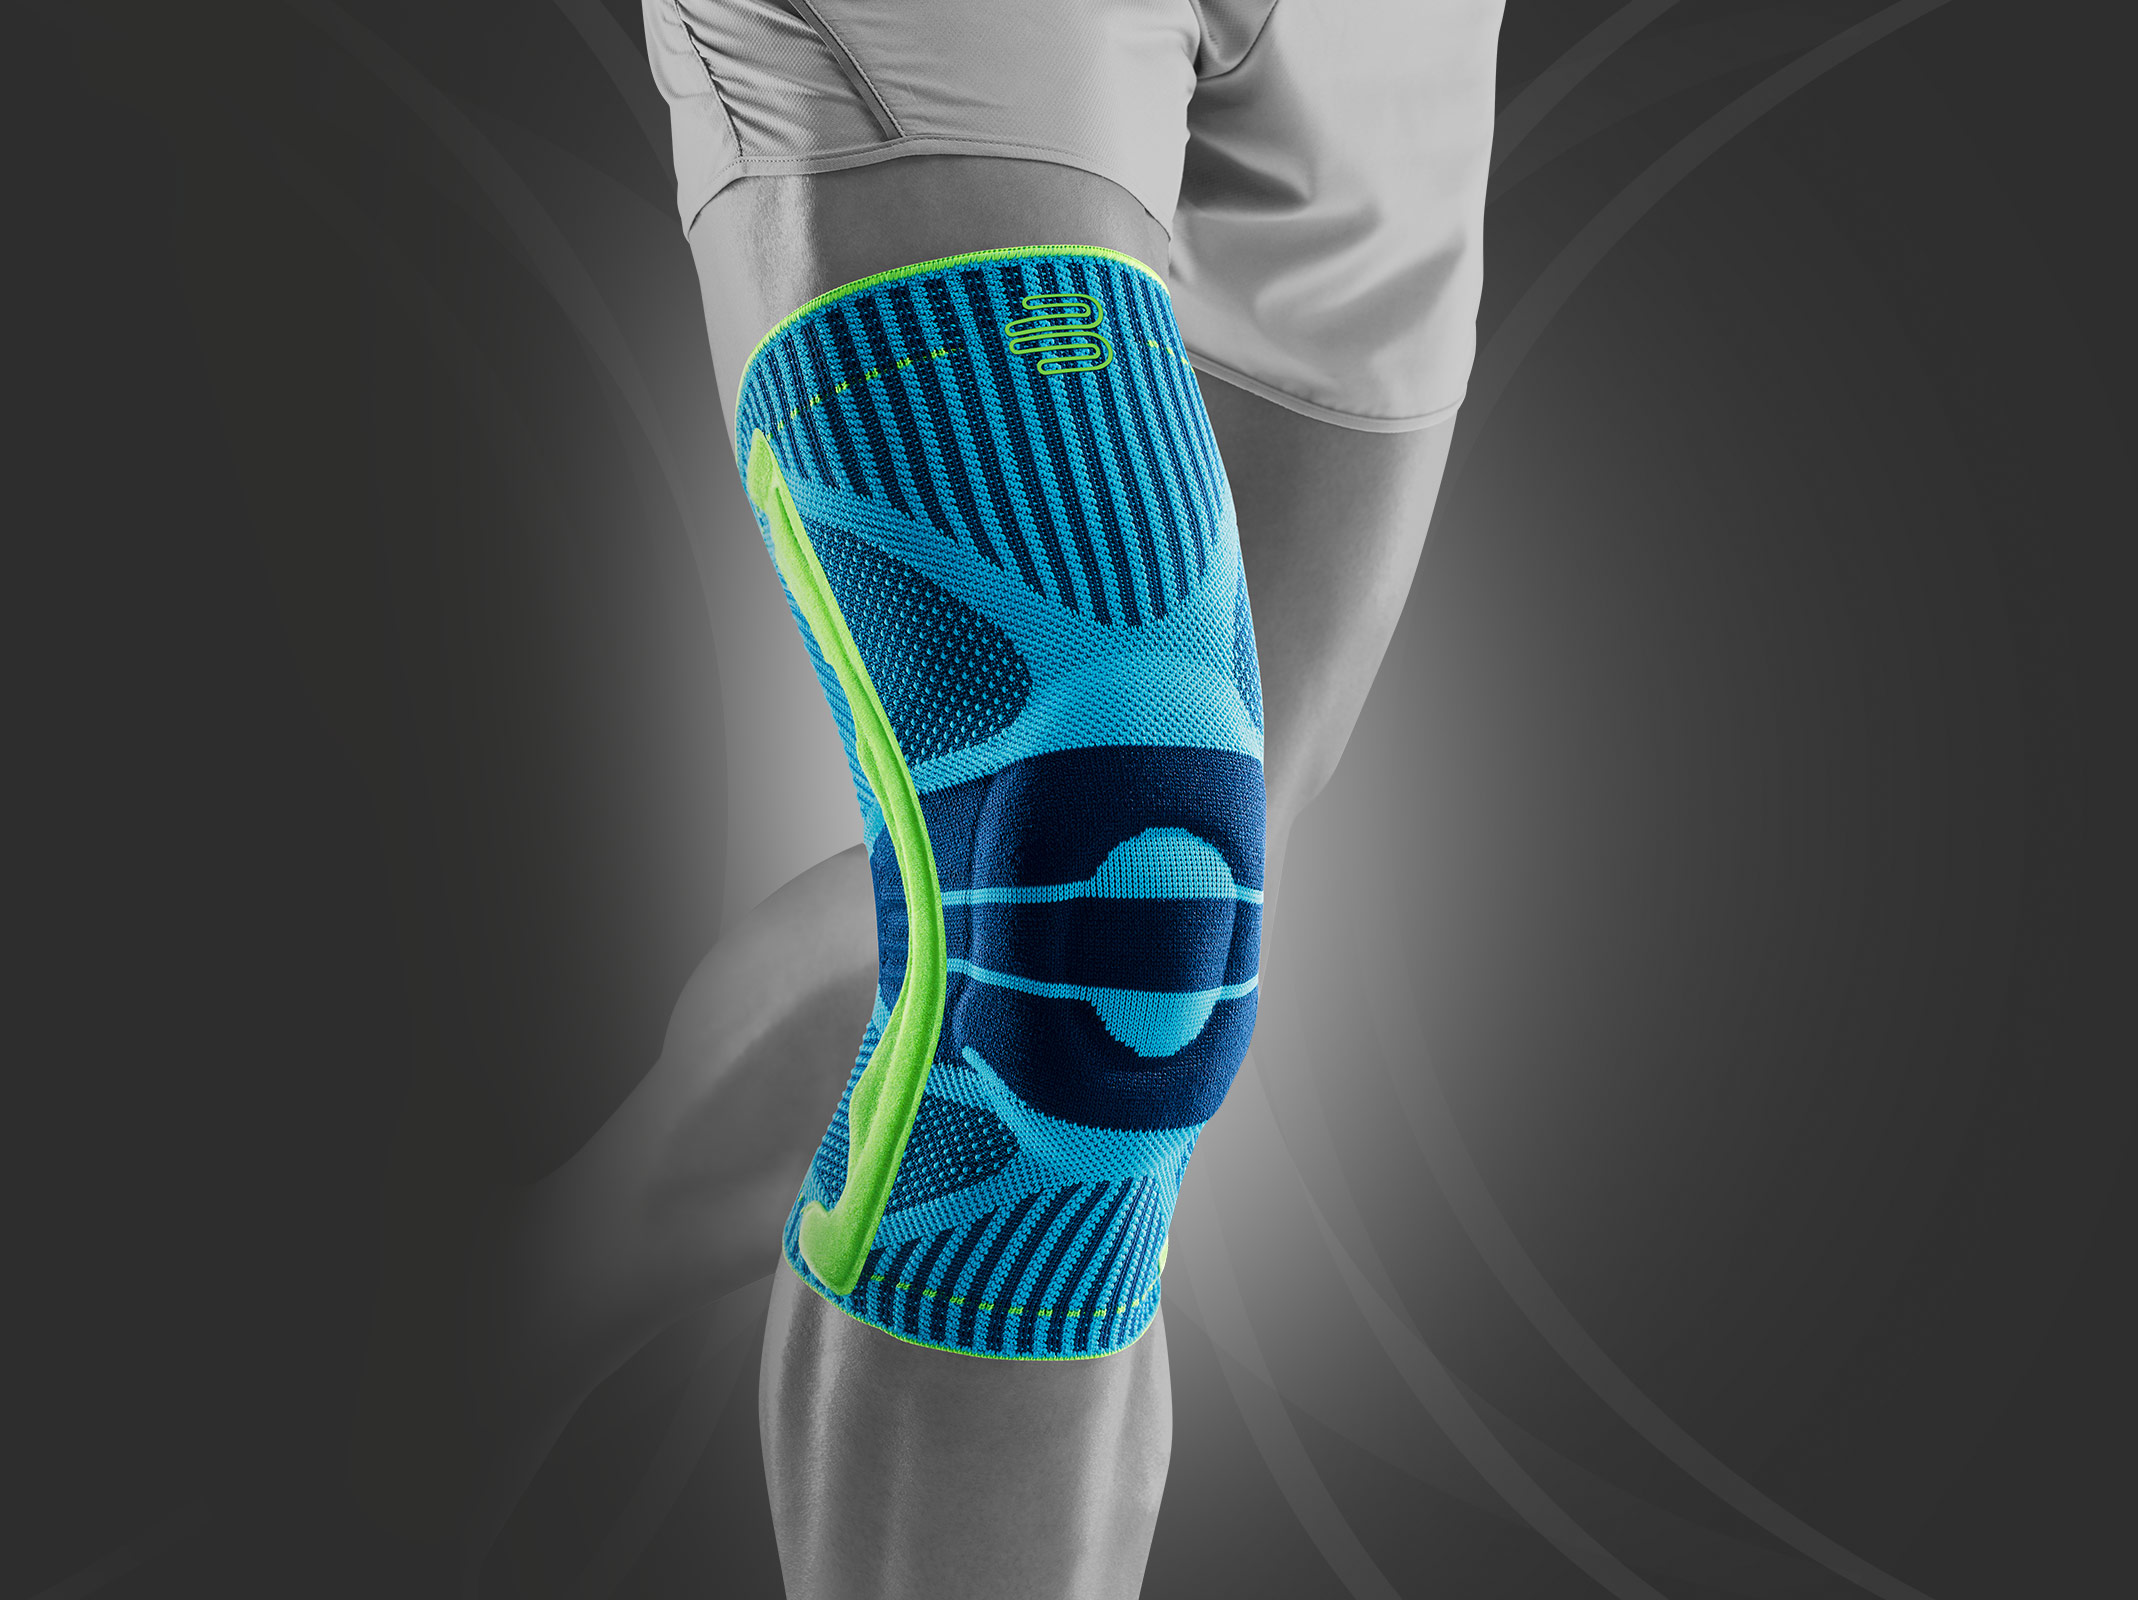 58f5785174 Premium Knee Support | Bauerfeind Sports Line